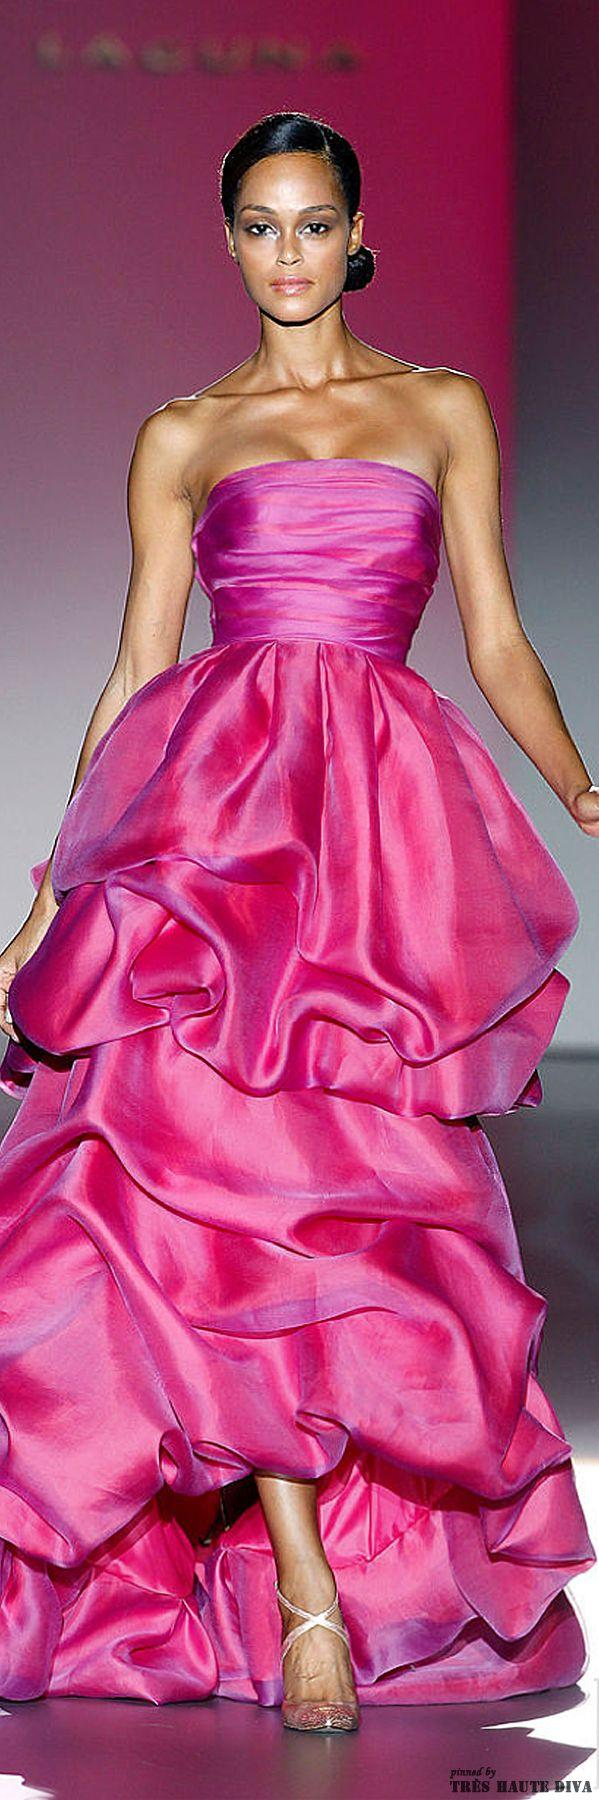 Mariage - Robes .... Roses Passion